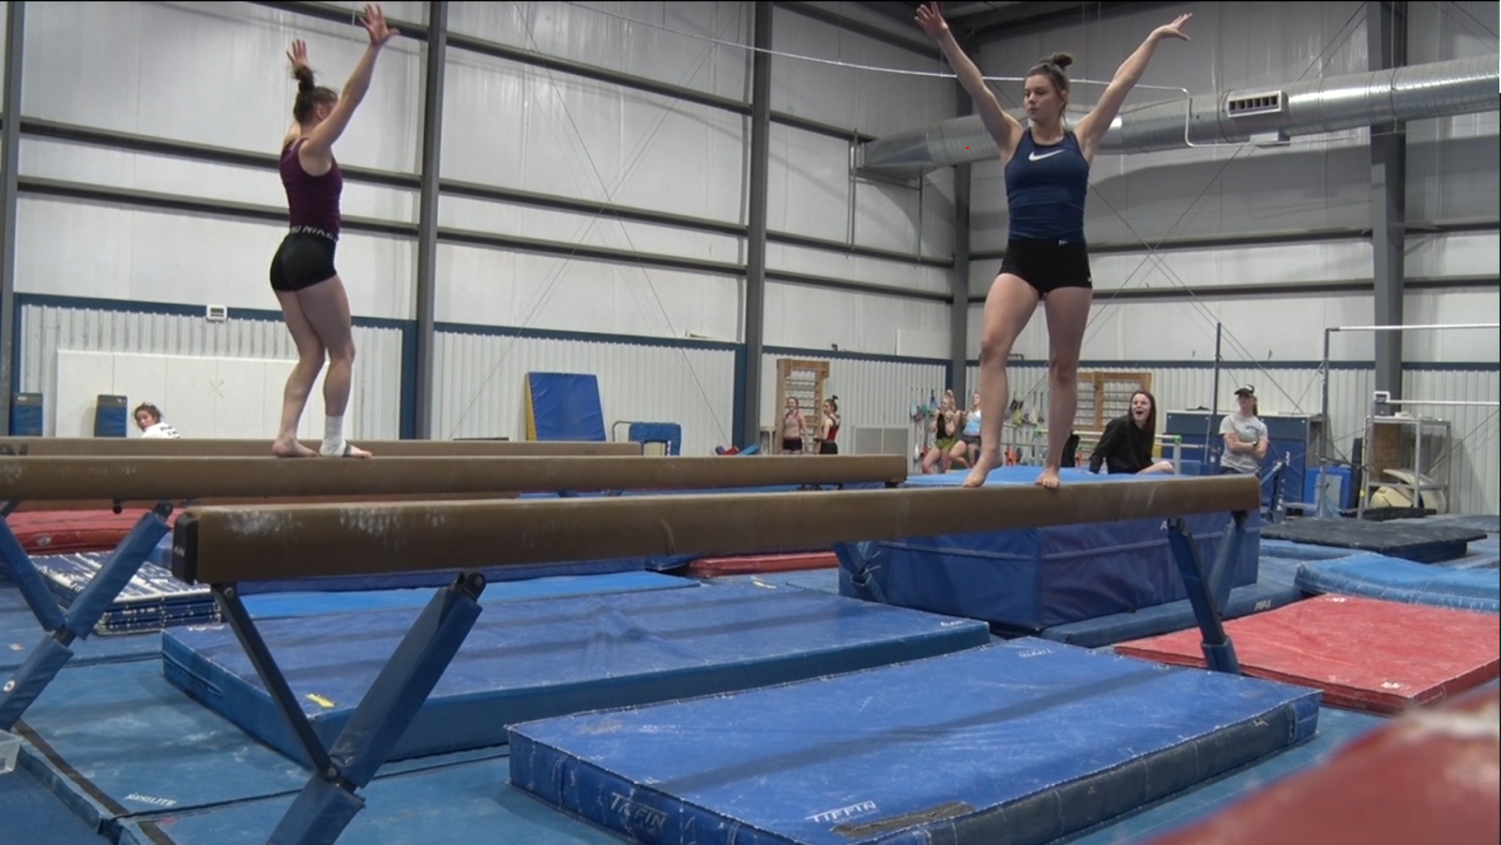 Blugold gymnastics vault into 2020 in a new training facility